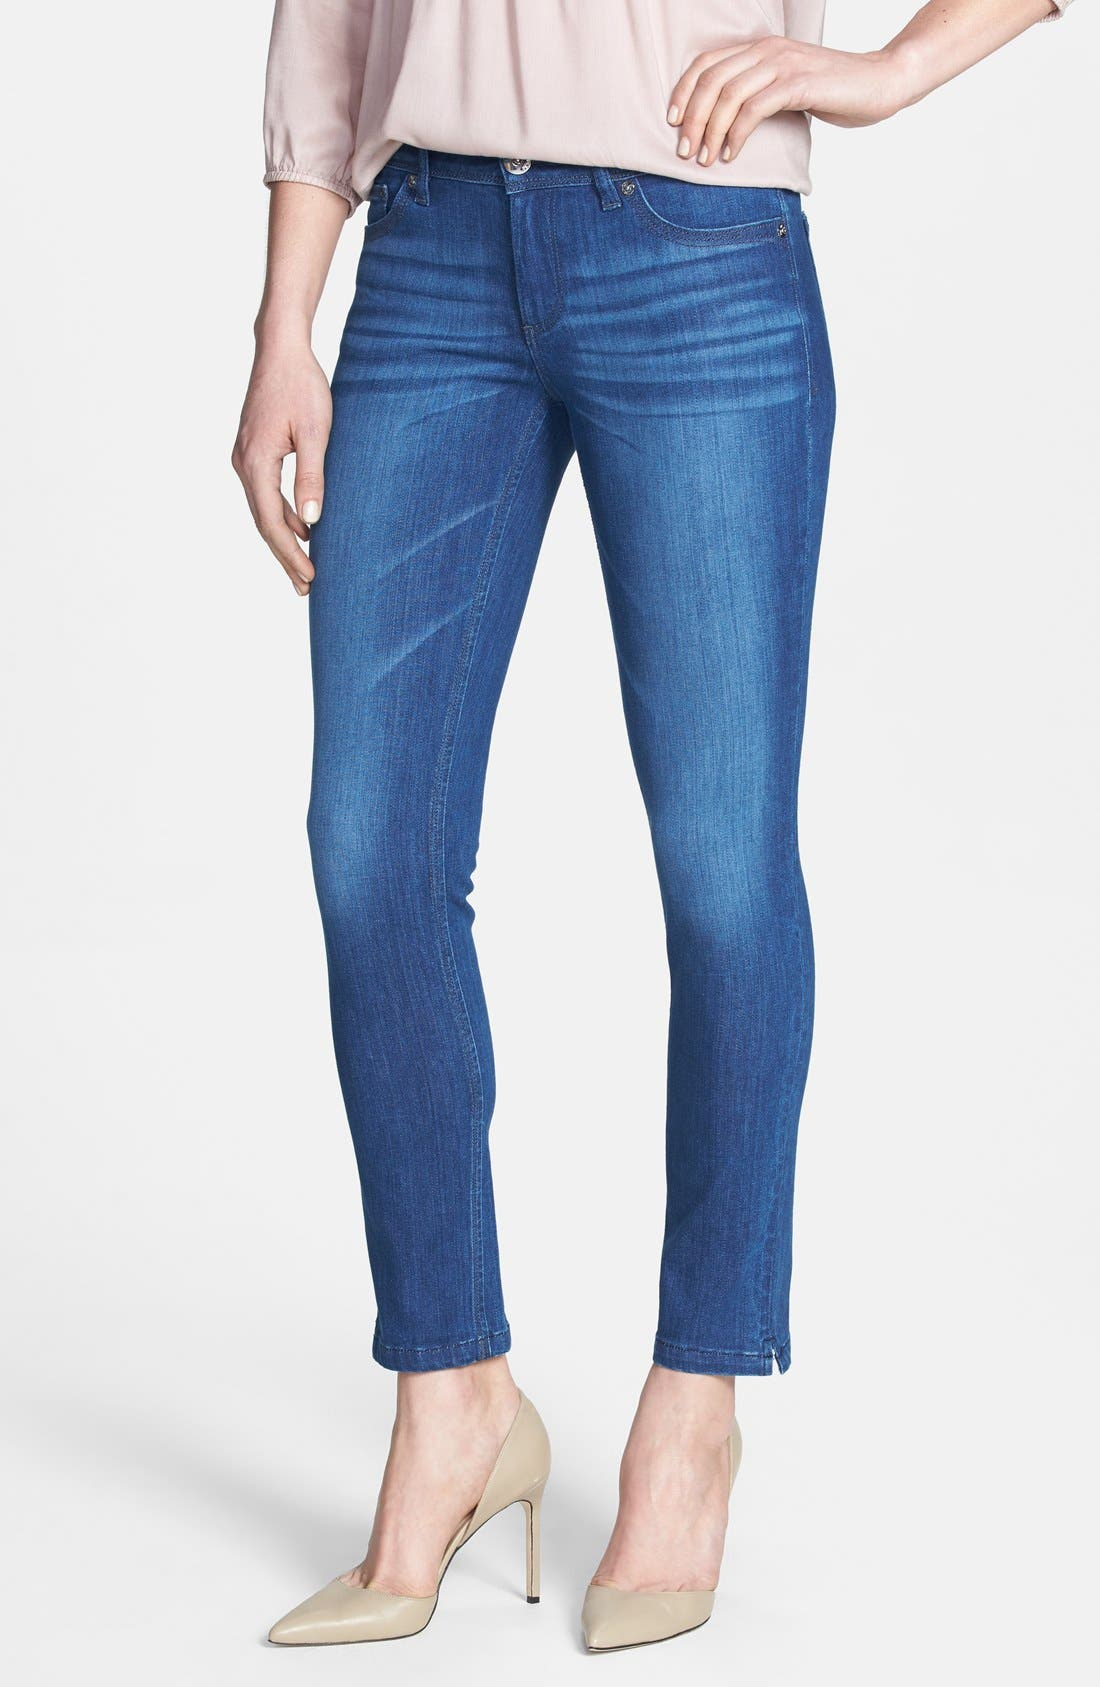 Alternate Image 1 Selected - DL1961 'Angel' Ankle Cigarette Jeans (Lincoln)